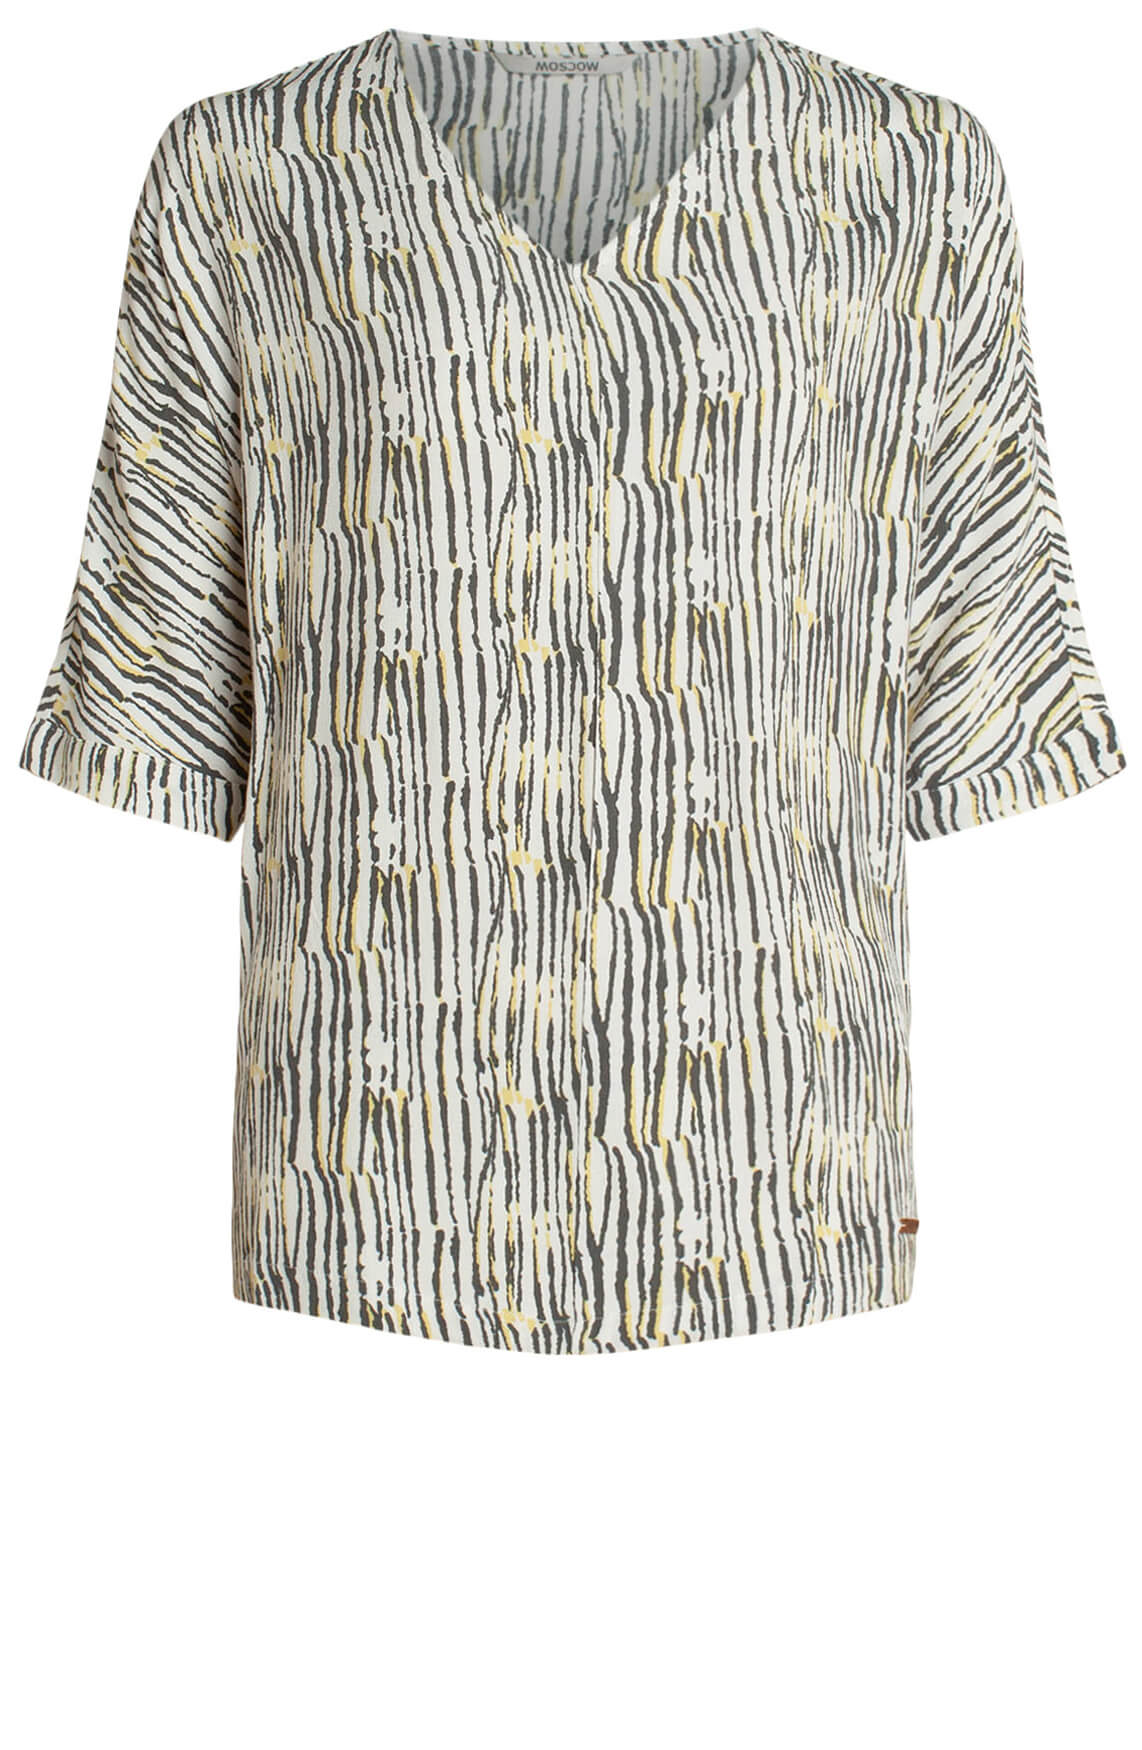 Moscow Dames Blouse met print wit